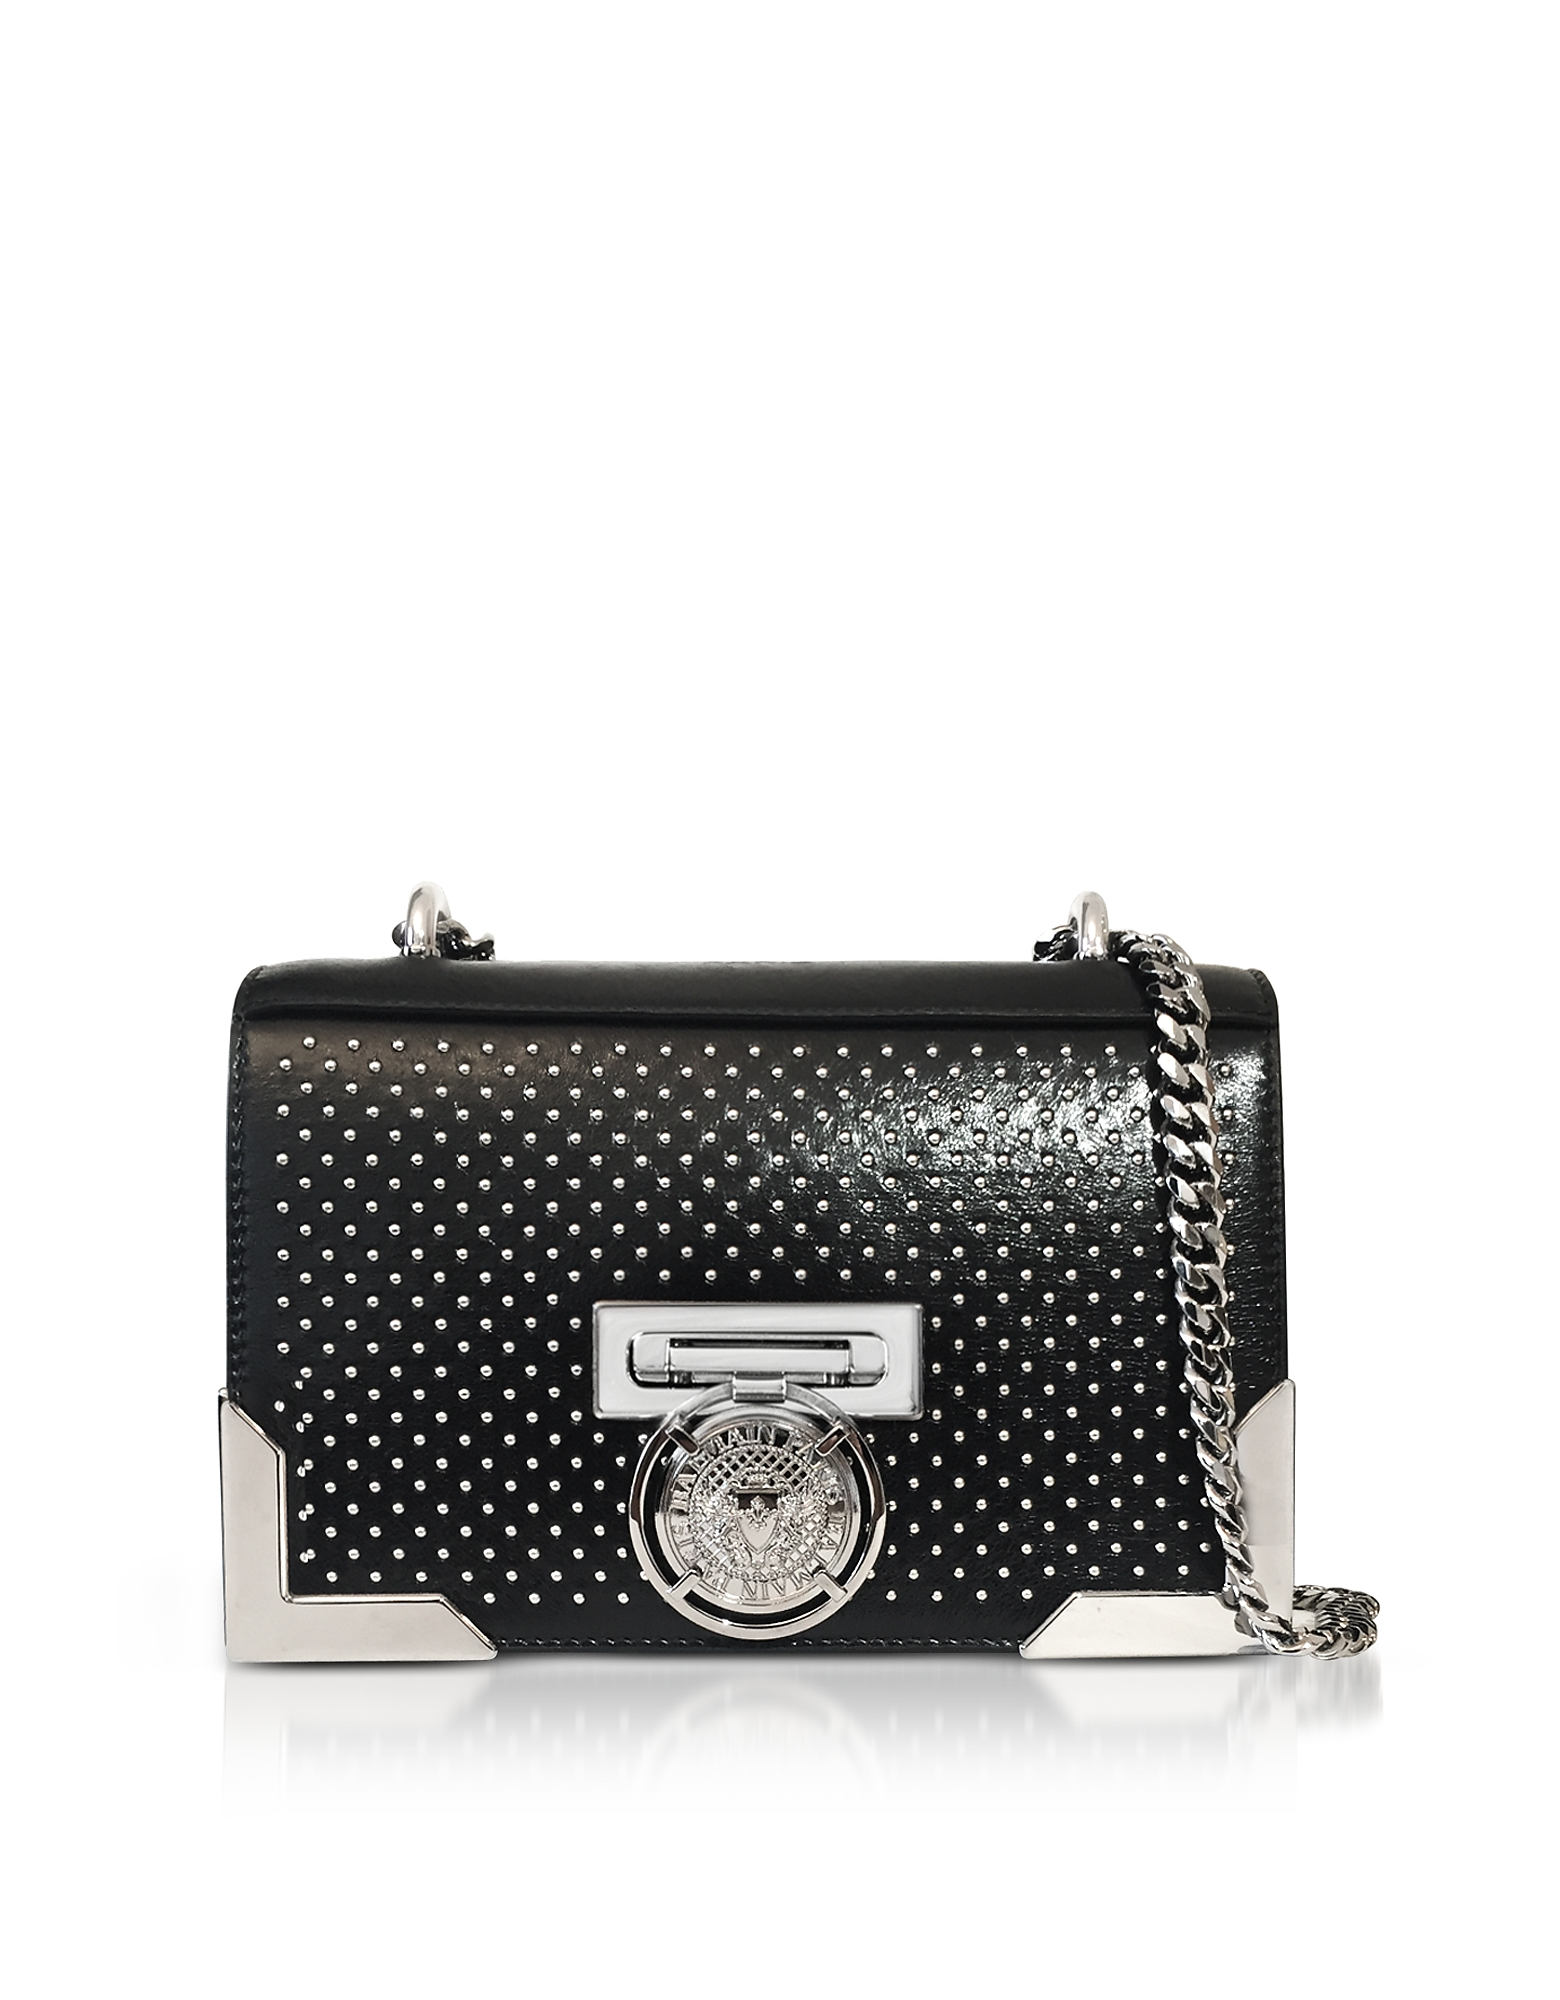 Balmain Handbags, Black Studded Leather BBox20 Clutch